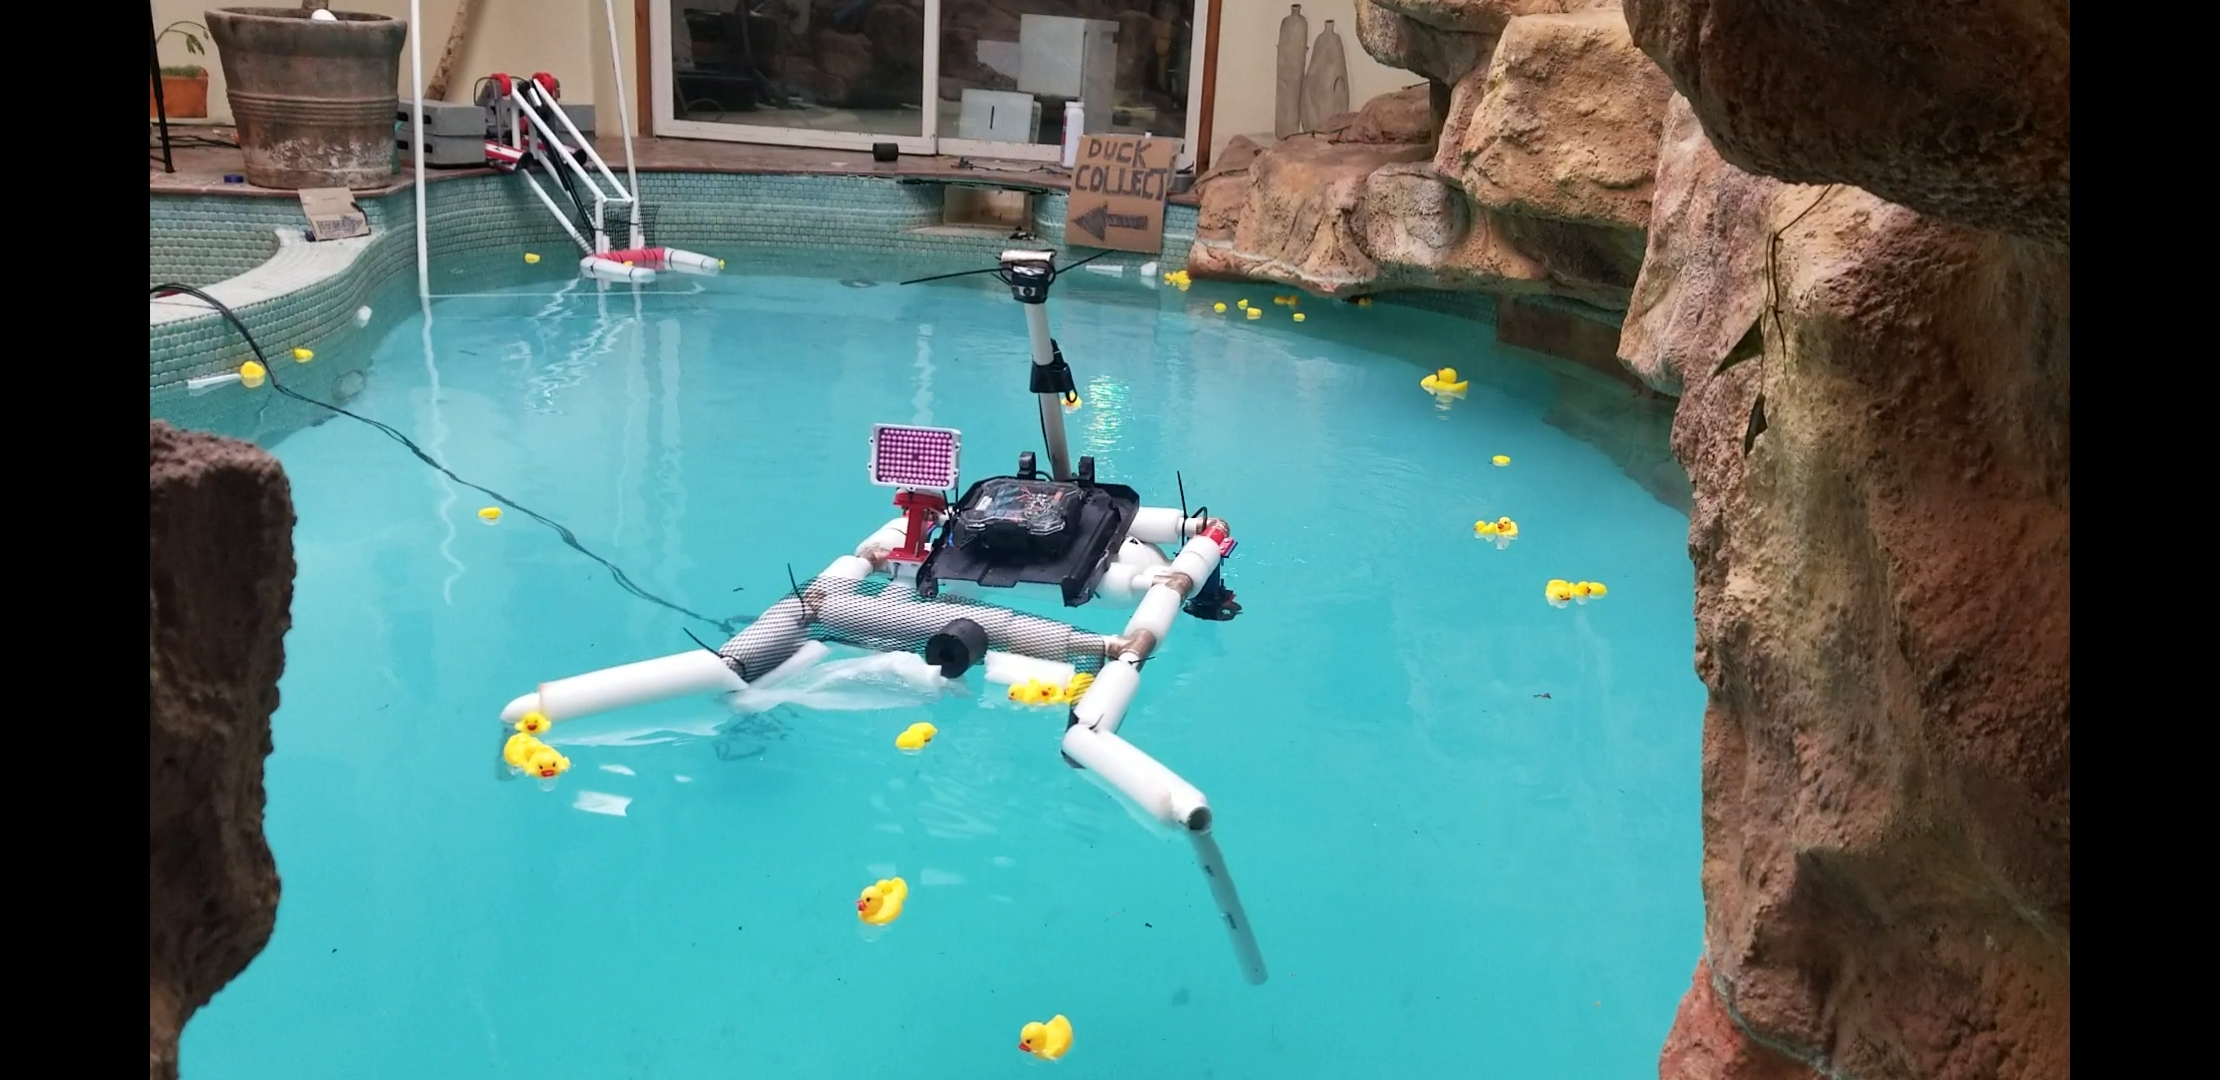 You Can Drive AltruBots' Robot With Just an Internet Connection